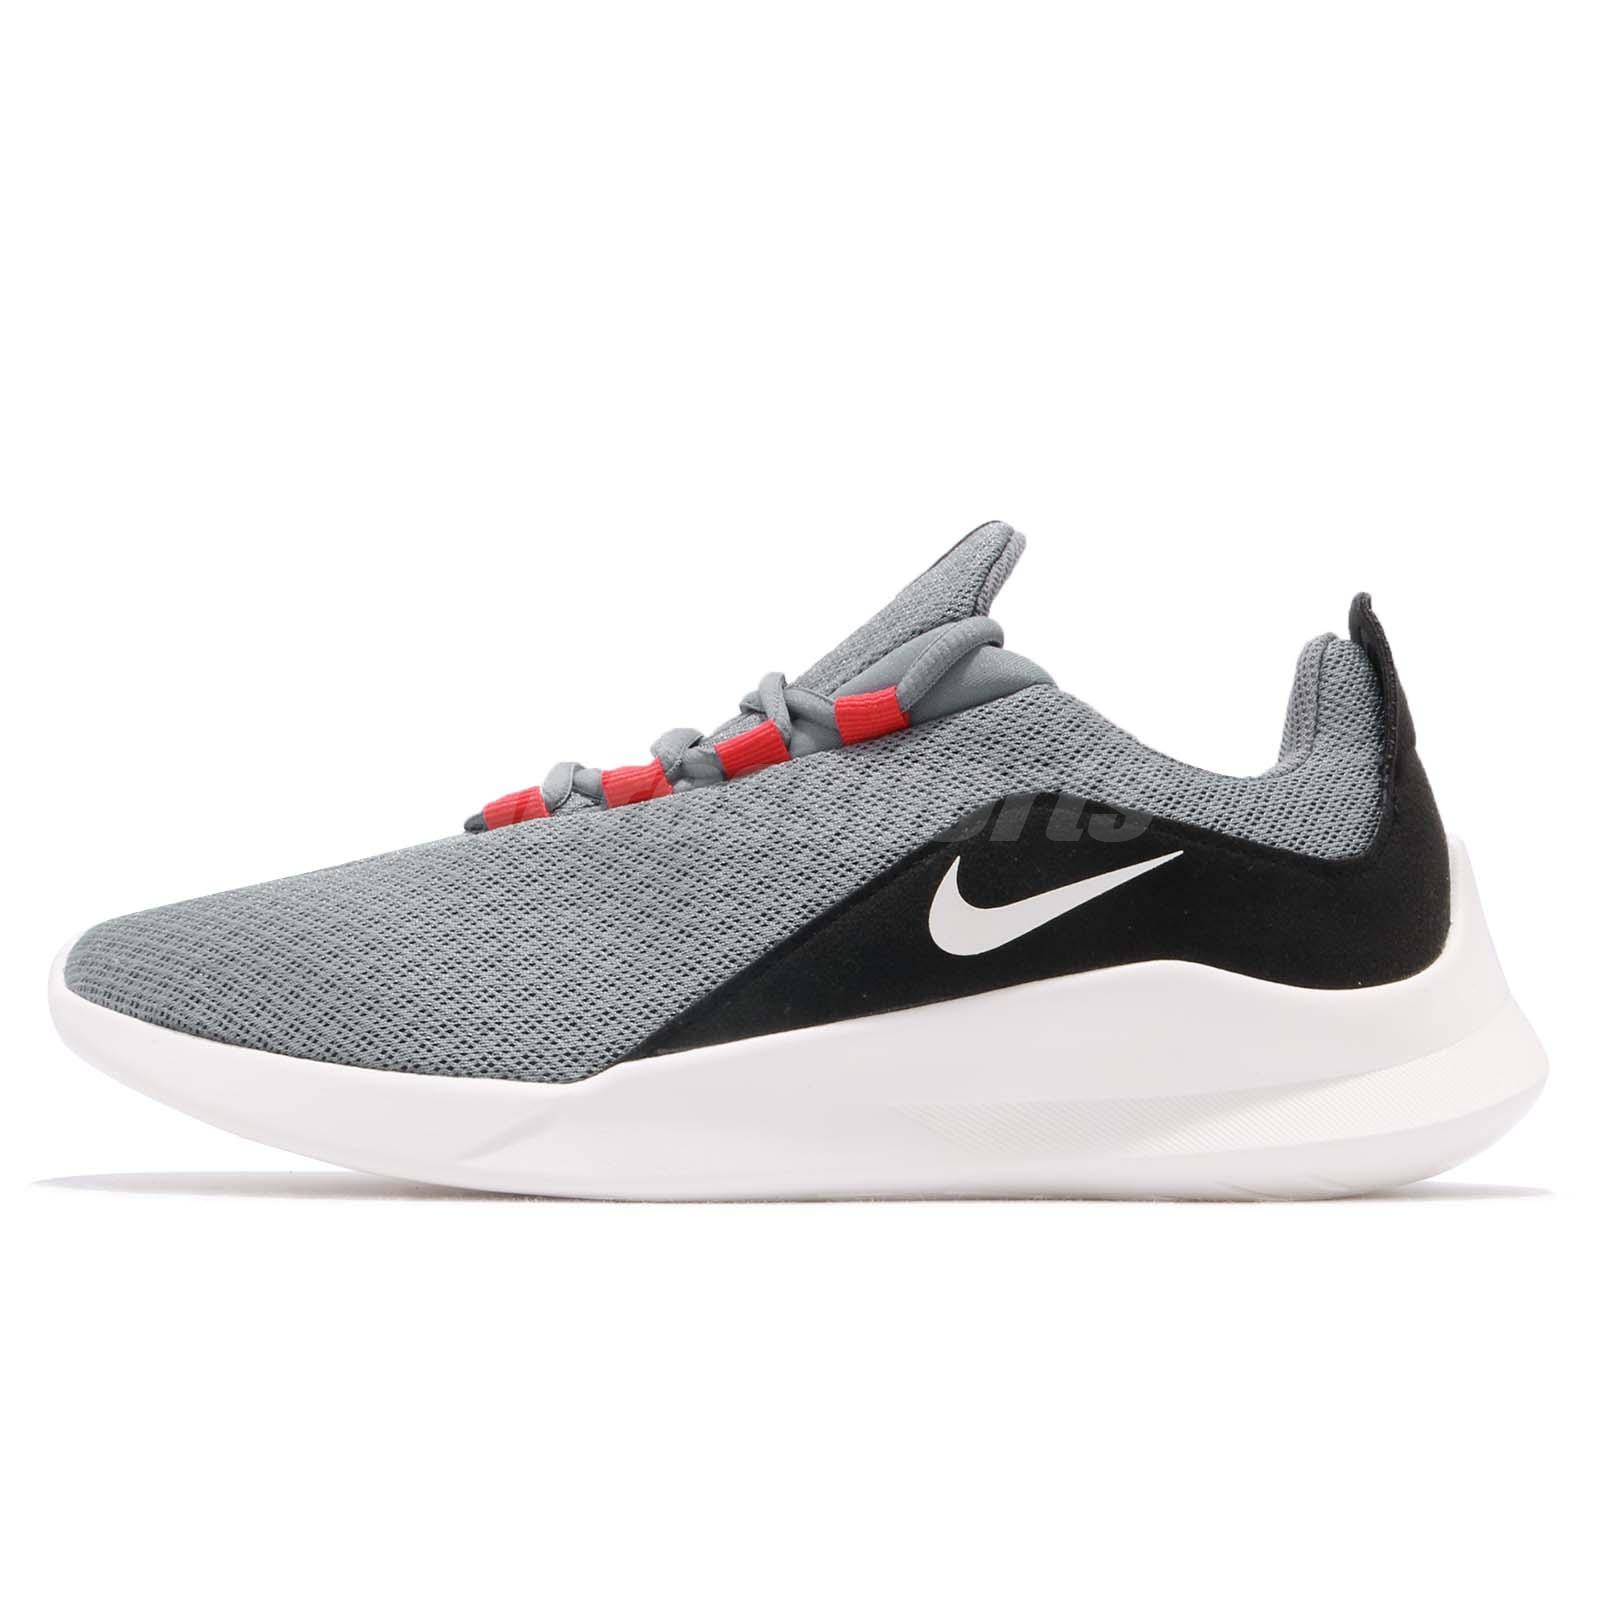 the best attitude 3fcfc 4446e Nike Viale Grey Red White Black Men Running Casual Shoes Sneakers AA2181-007